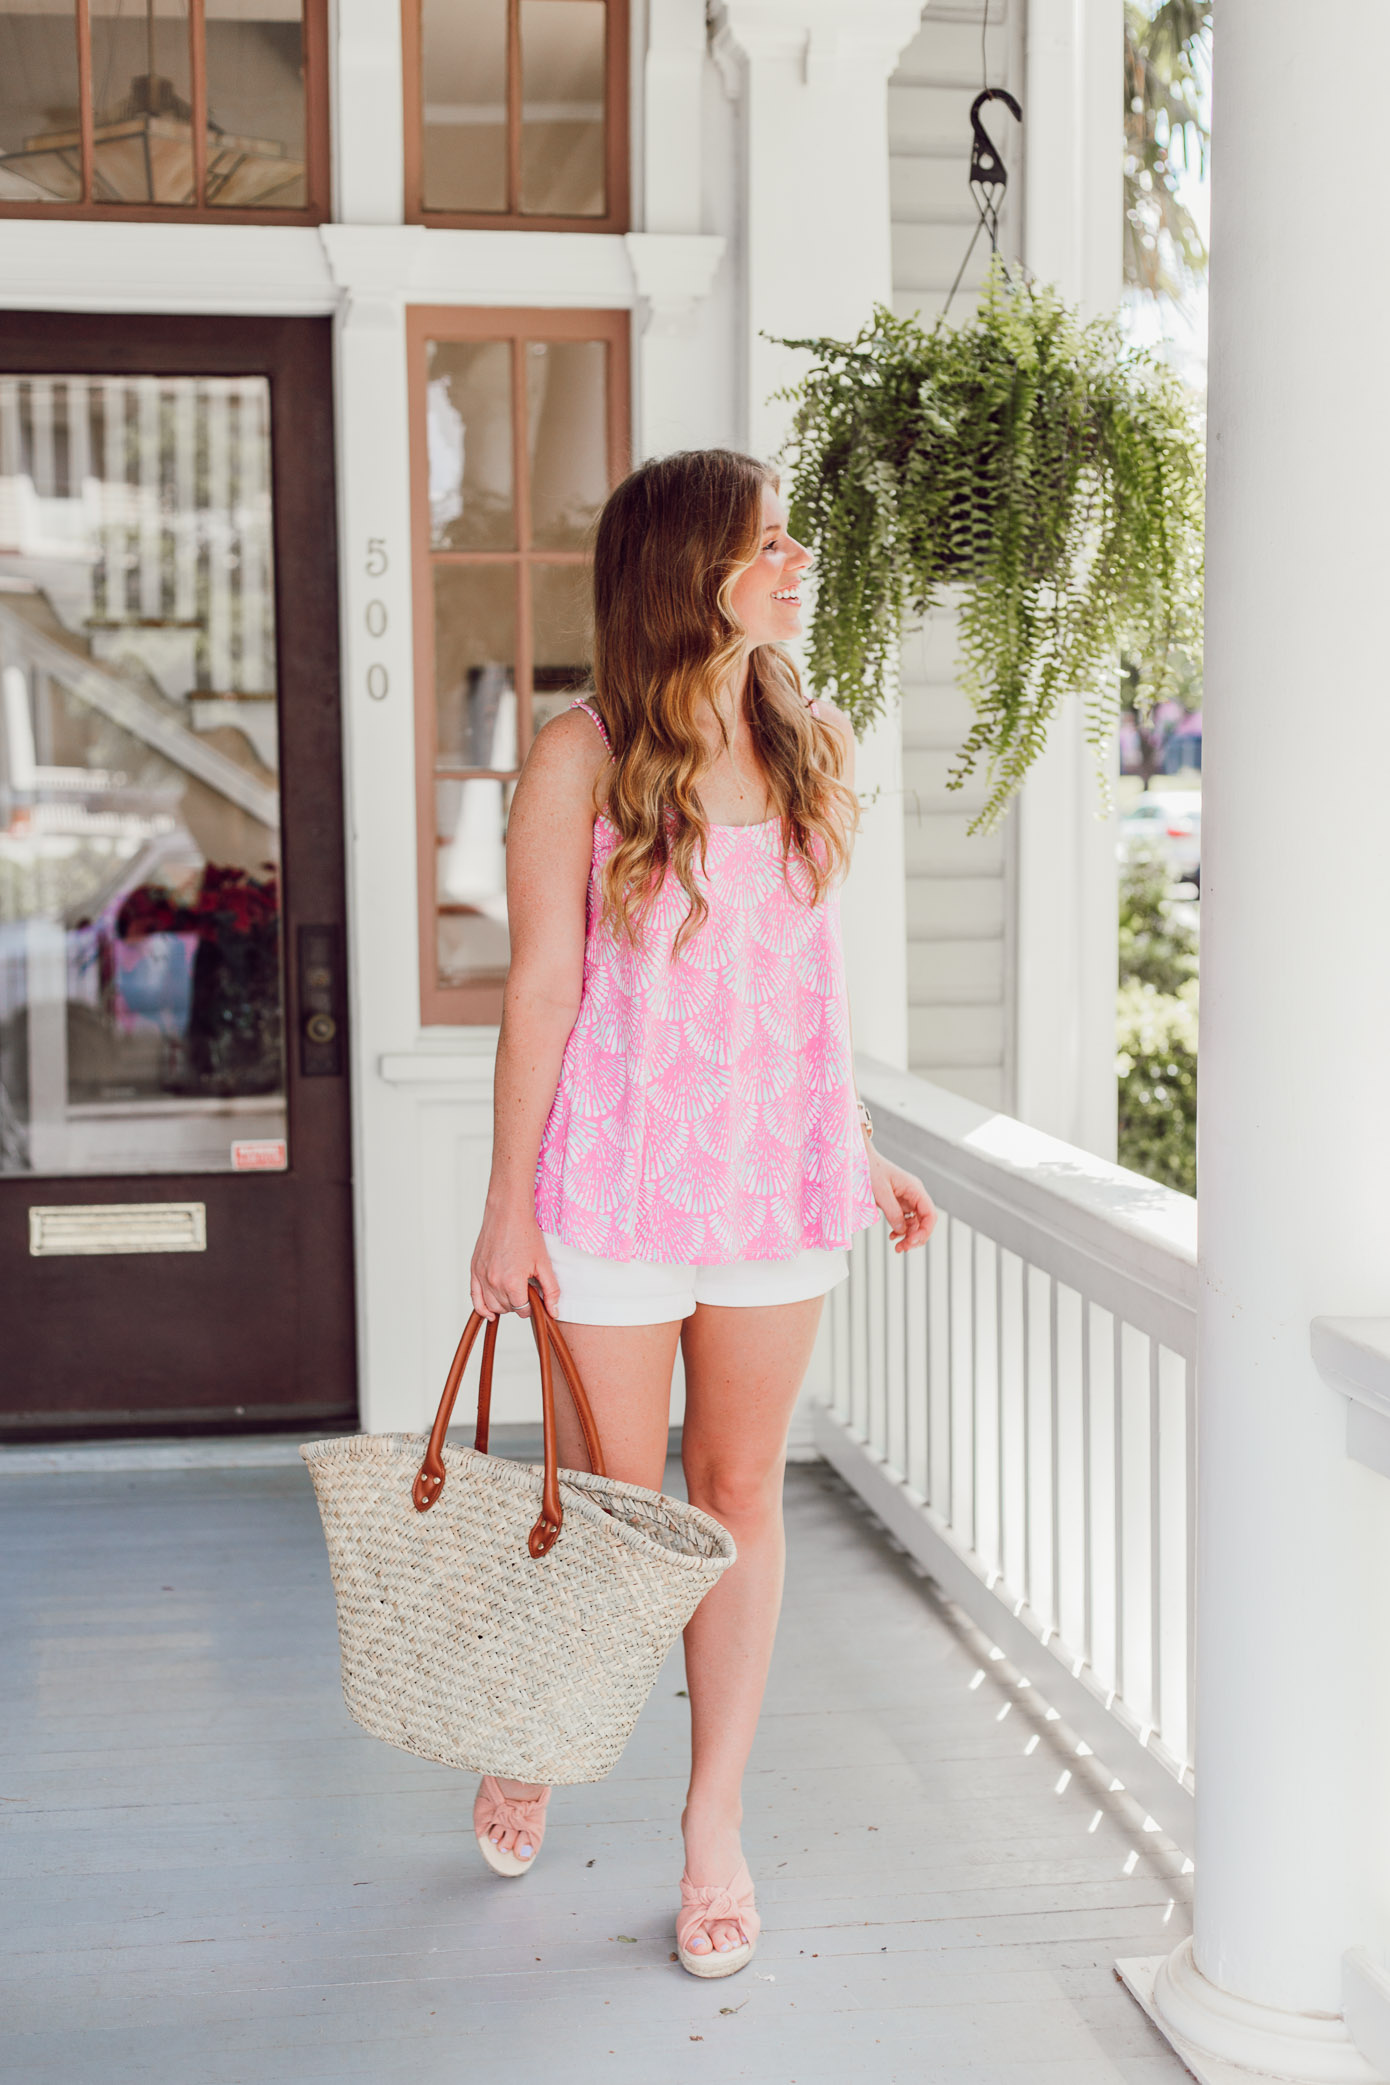 Summer 2018 Bucket List | Casual Summer Style | Louella Reese Life & Style Blog